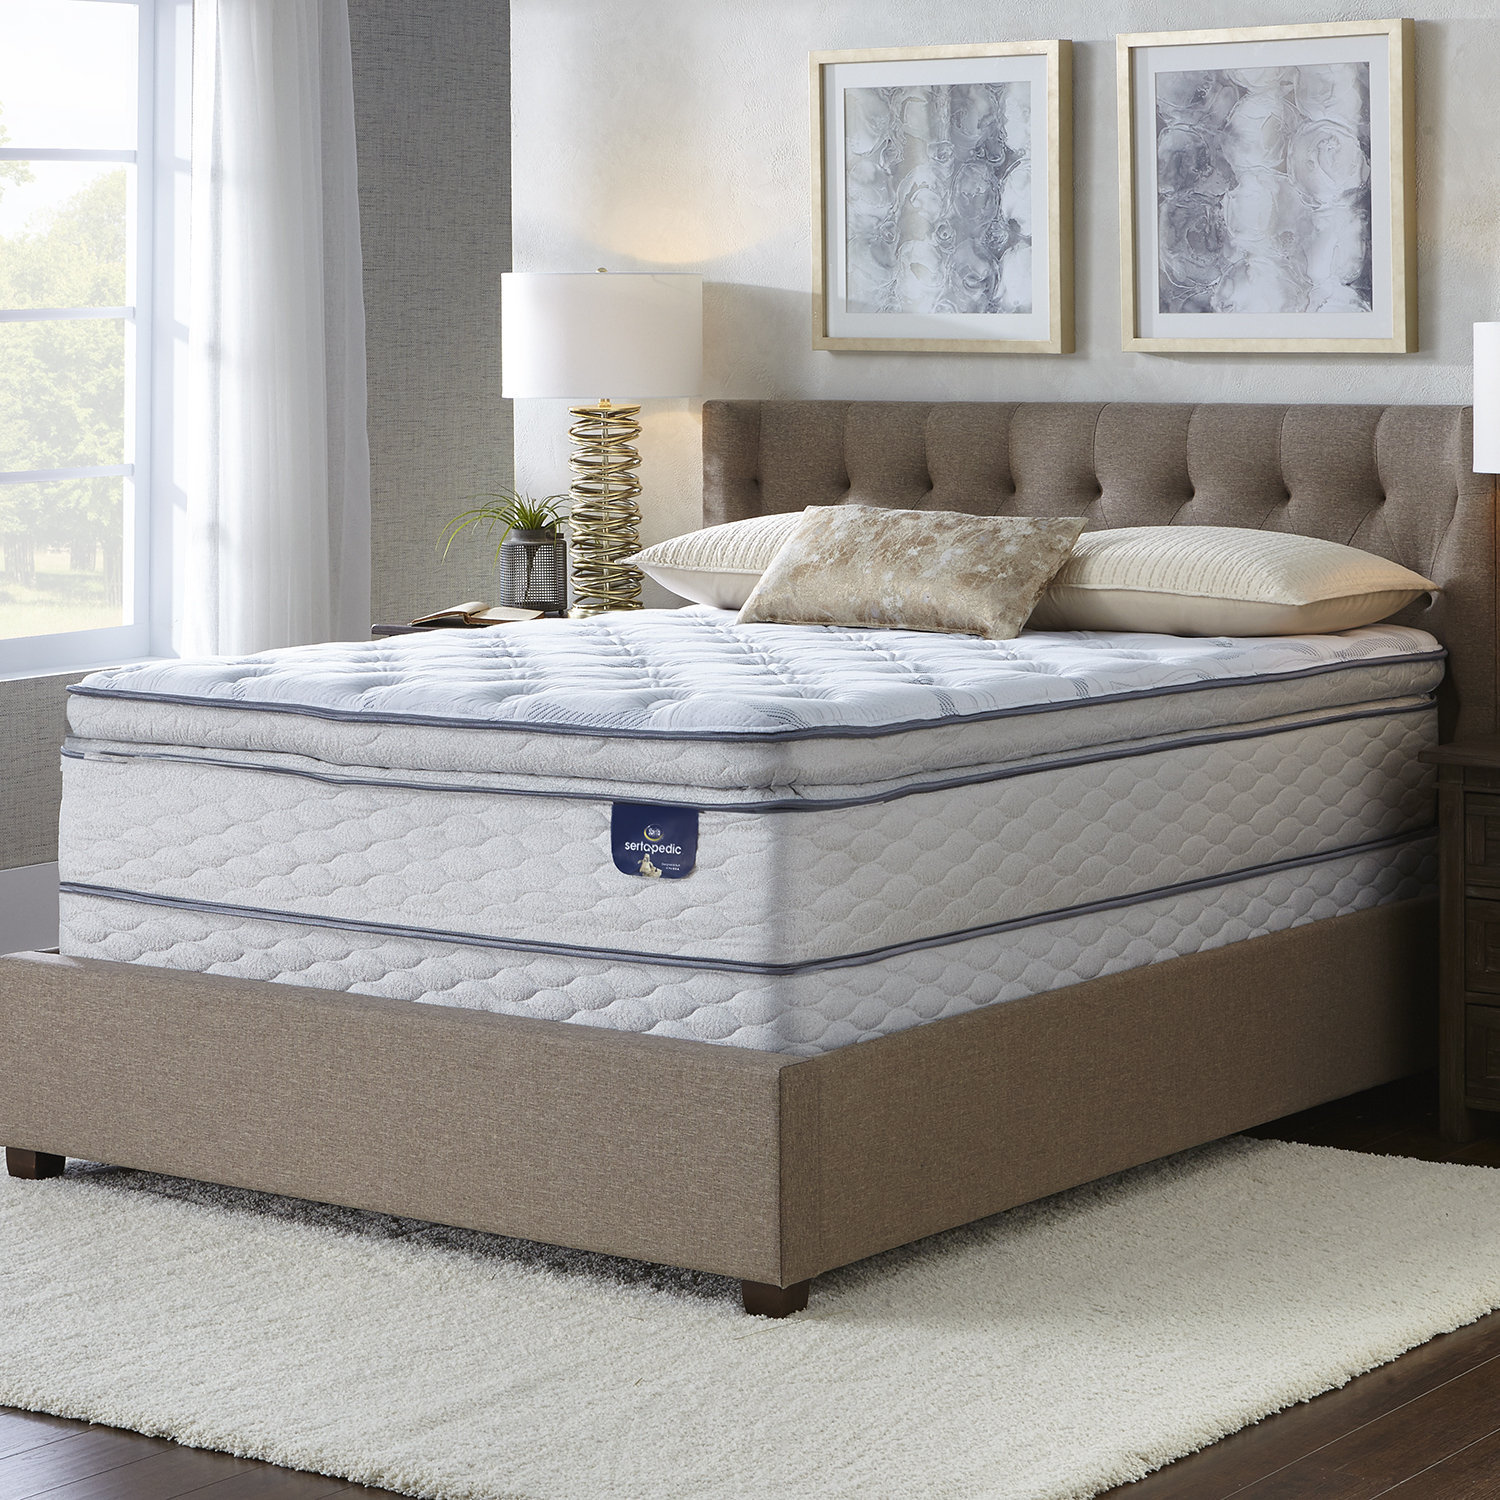 topper ideas gallery fort with ultimate toppers top bedding of pacific mattress queen best pillow coast